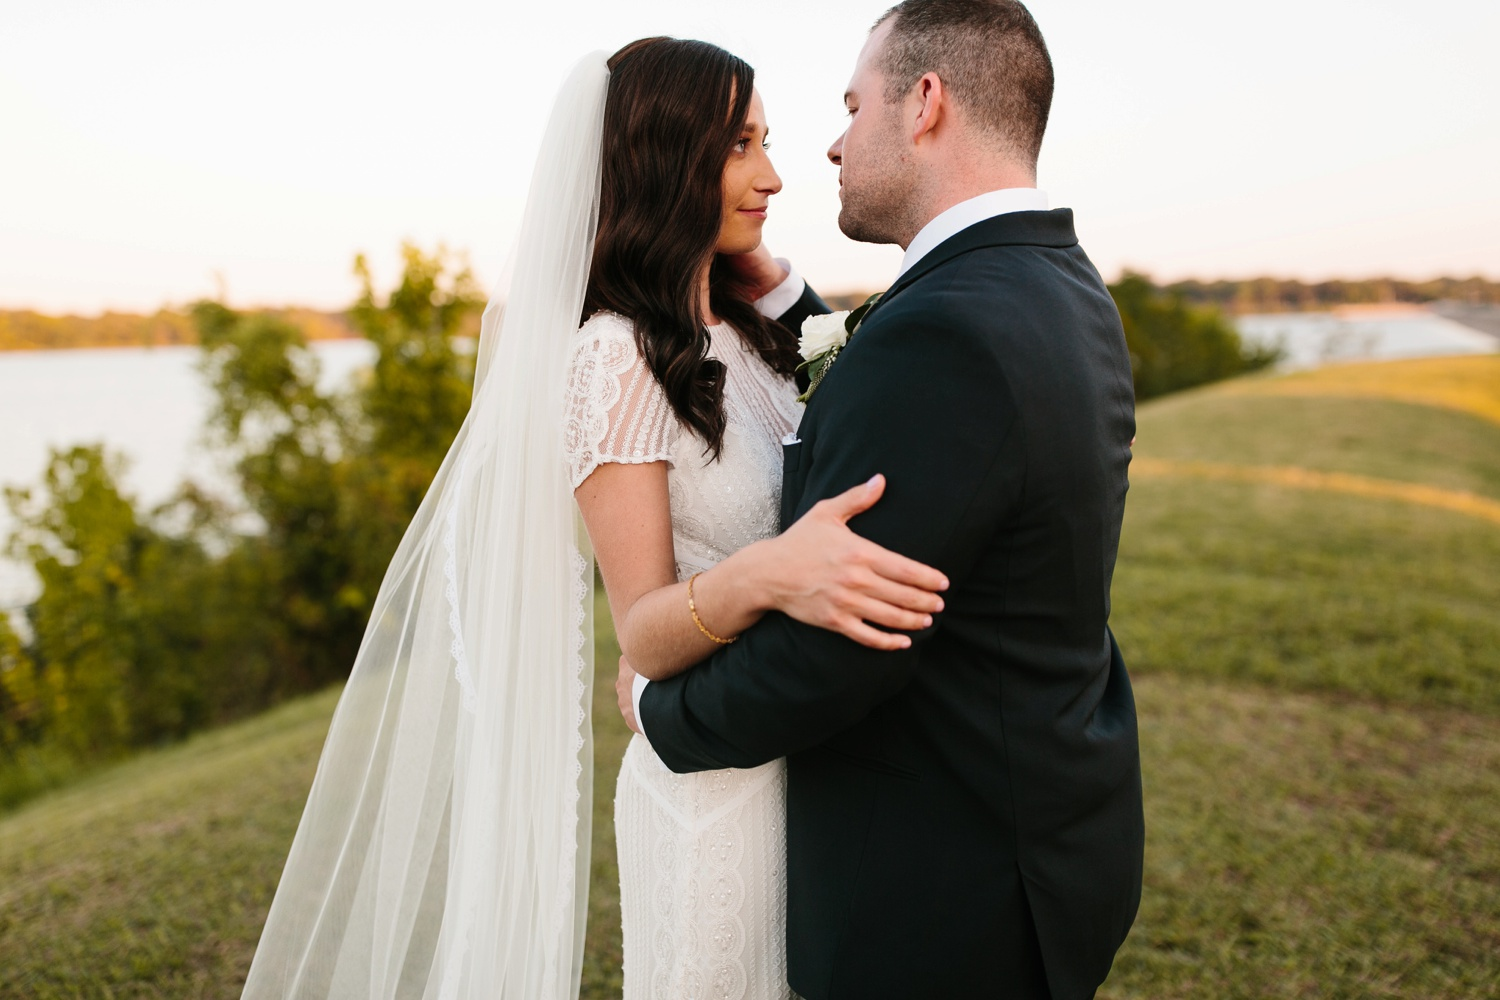 Kadee + Tyler | a raw, emotional wedding at the Filter Building on White Rock Lake in Dallas, TX by North Texas Wedding Photographer, Rachel Meagan Photography 172